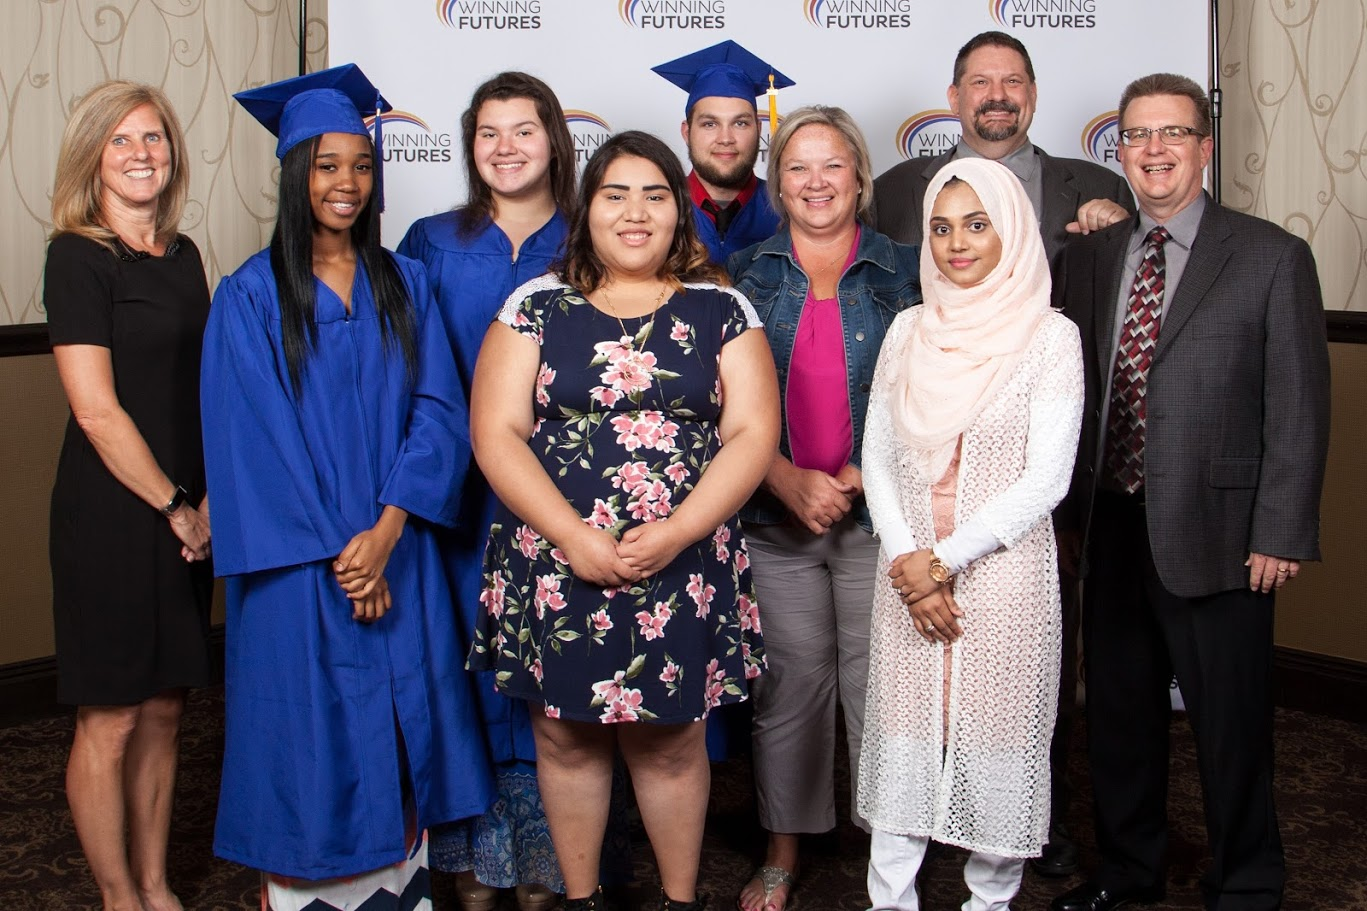 2018 Winning Futures Scholarship Recipients